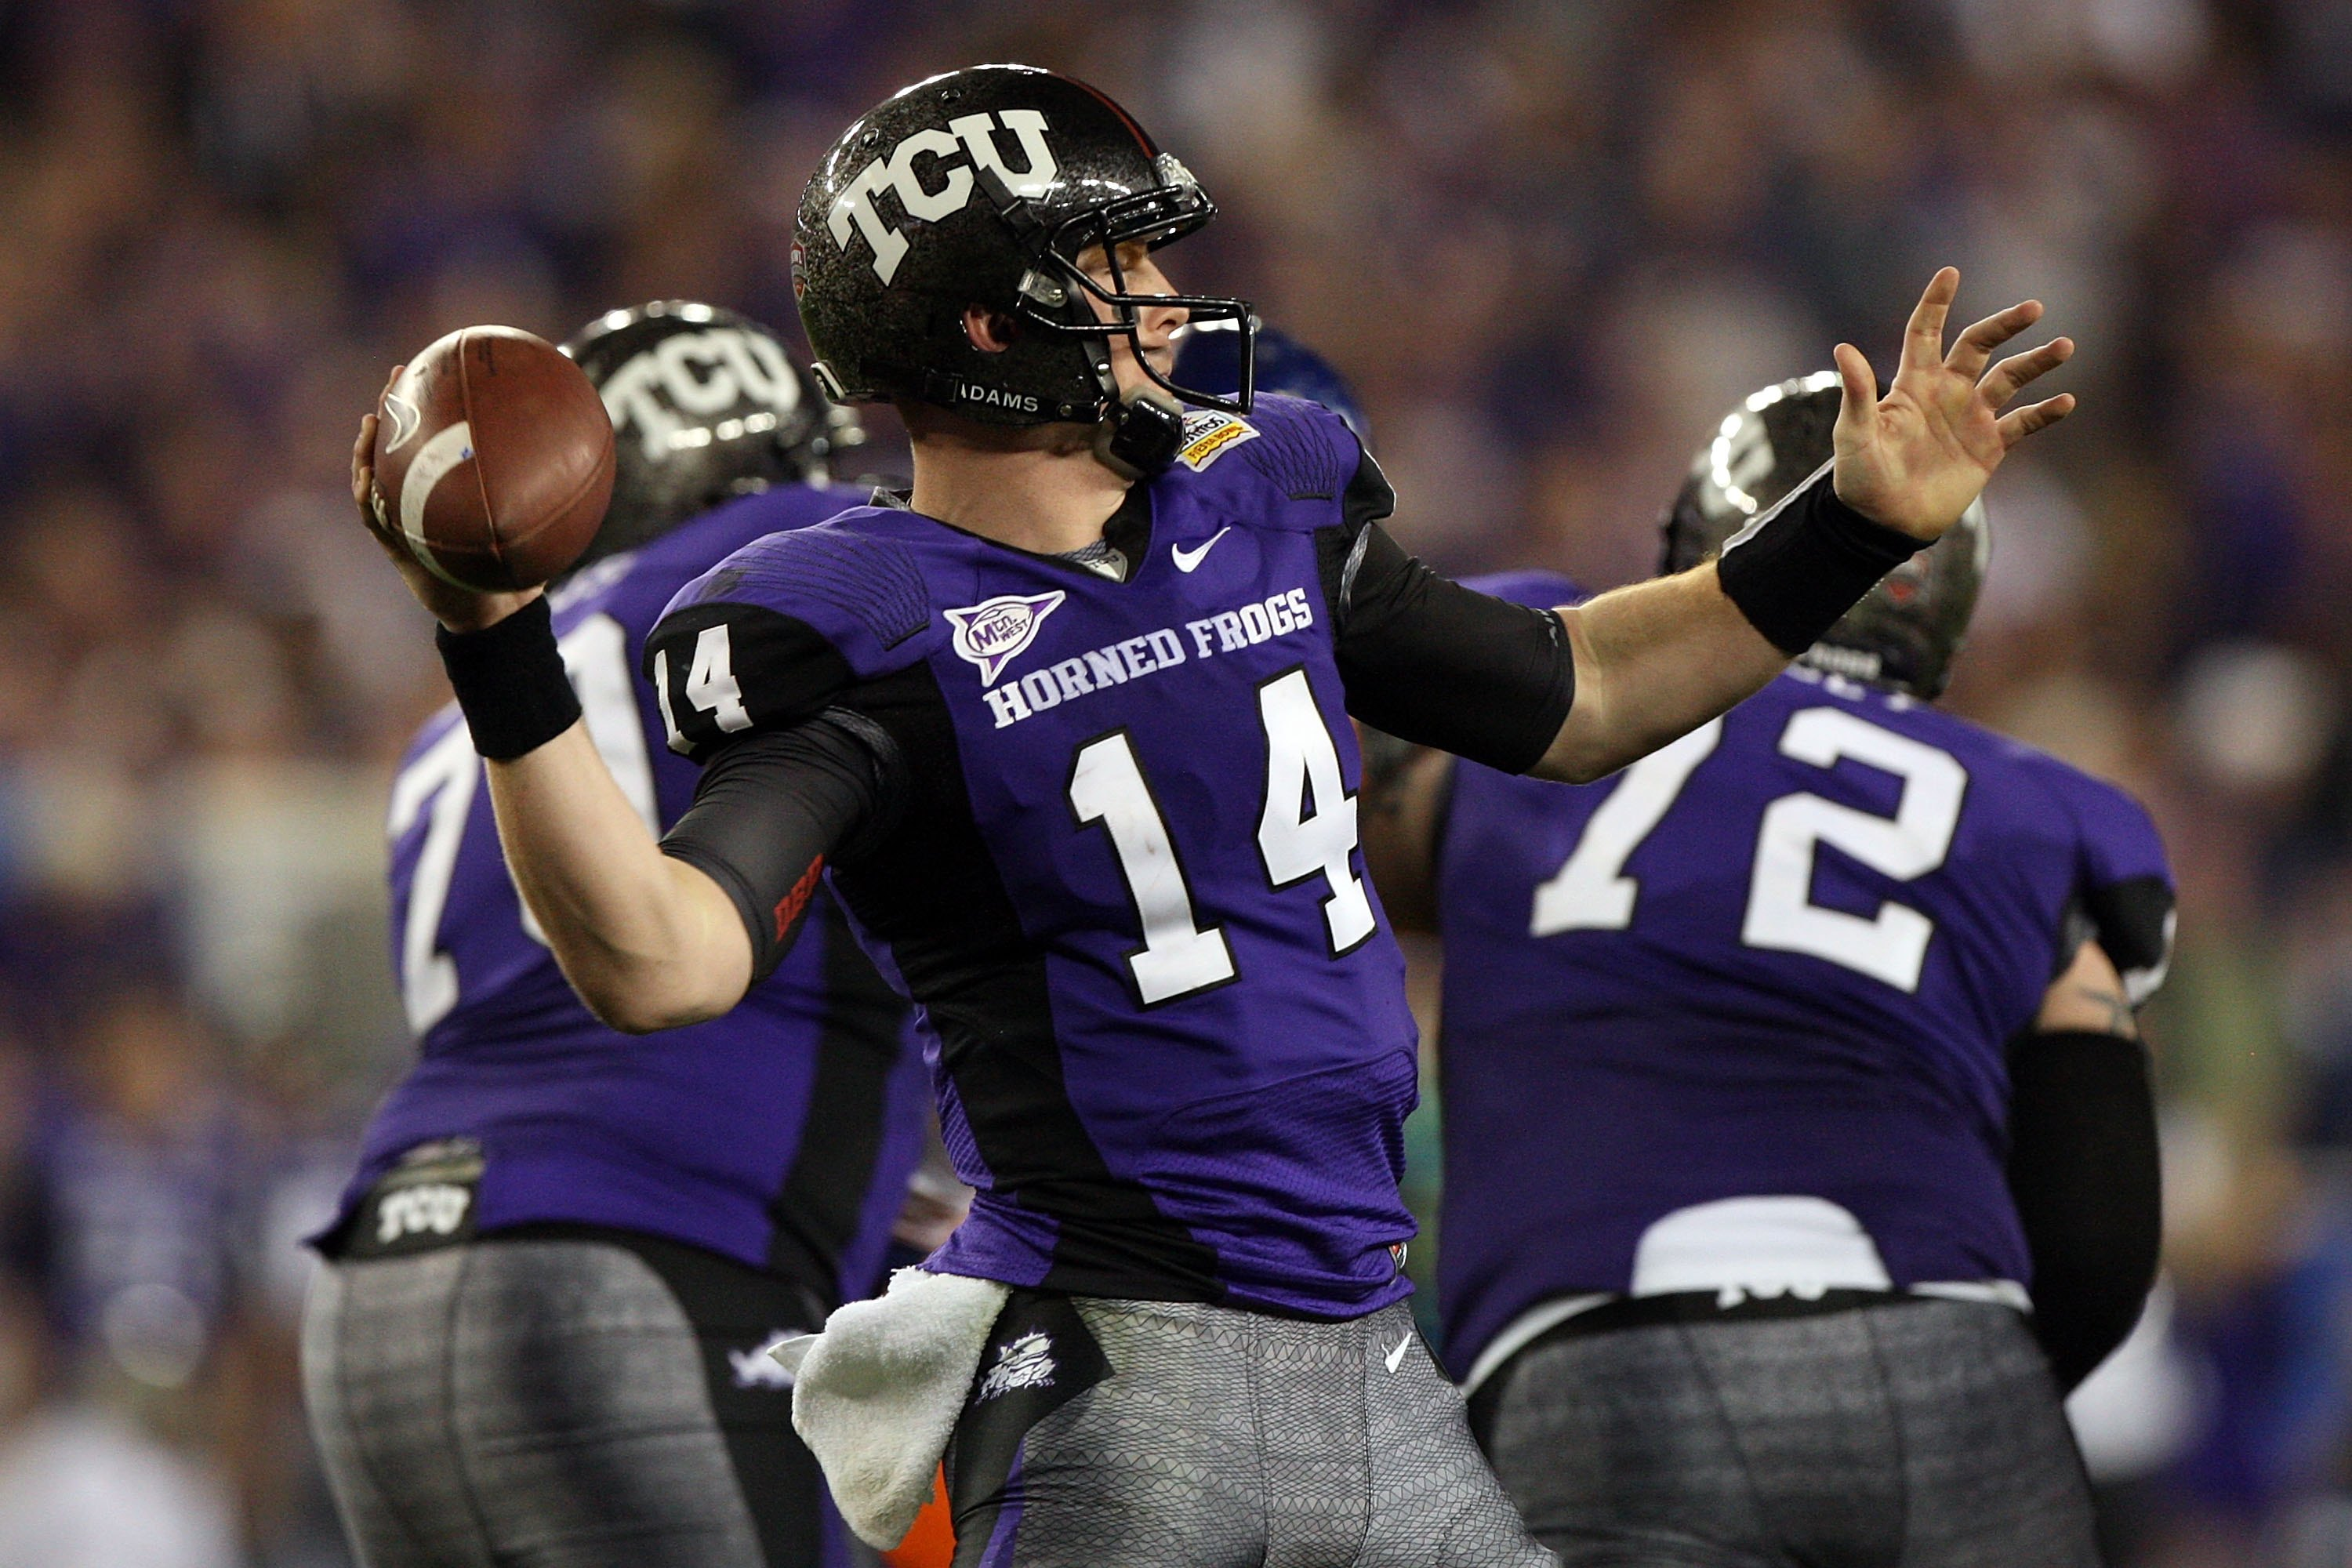 TCU might end up where many expect Boise State to be, come January